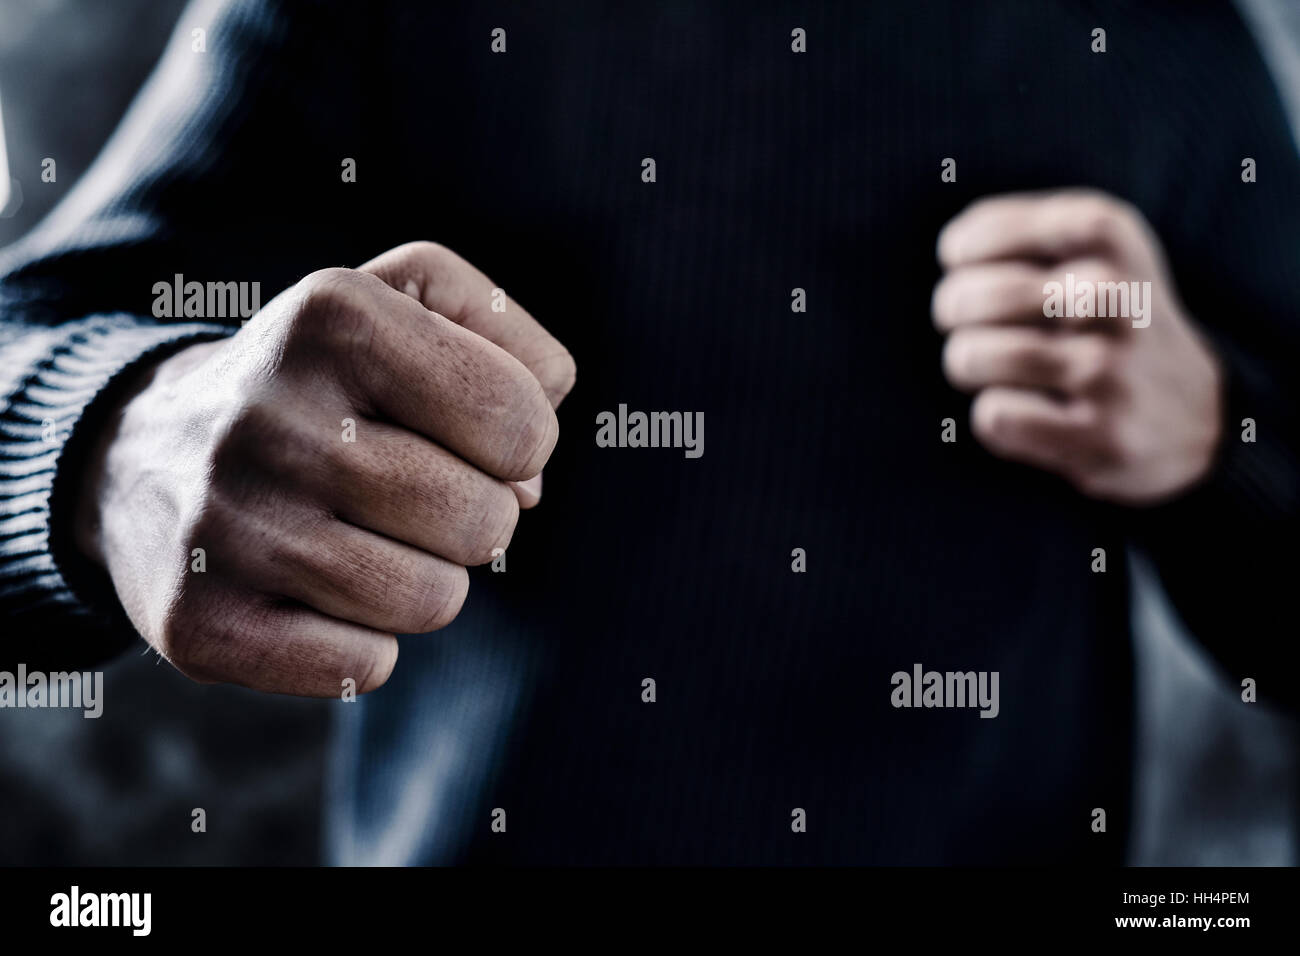 closeup of a young caucasian man in casual wear with a threatening gesture, ready to punch or fight with his fists - Stock Image